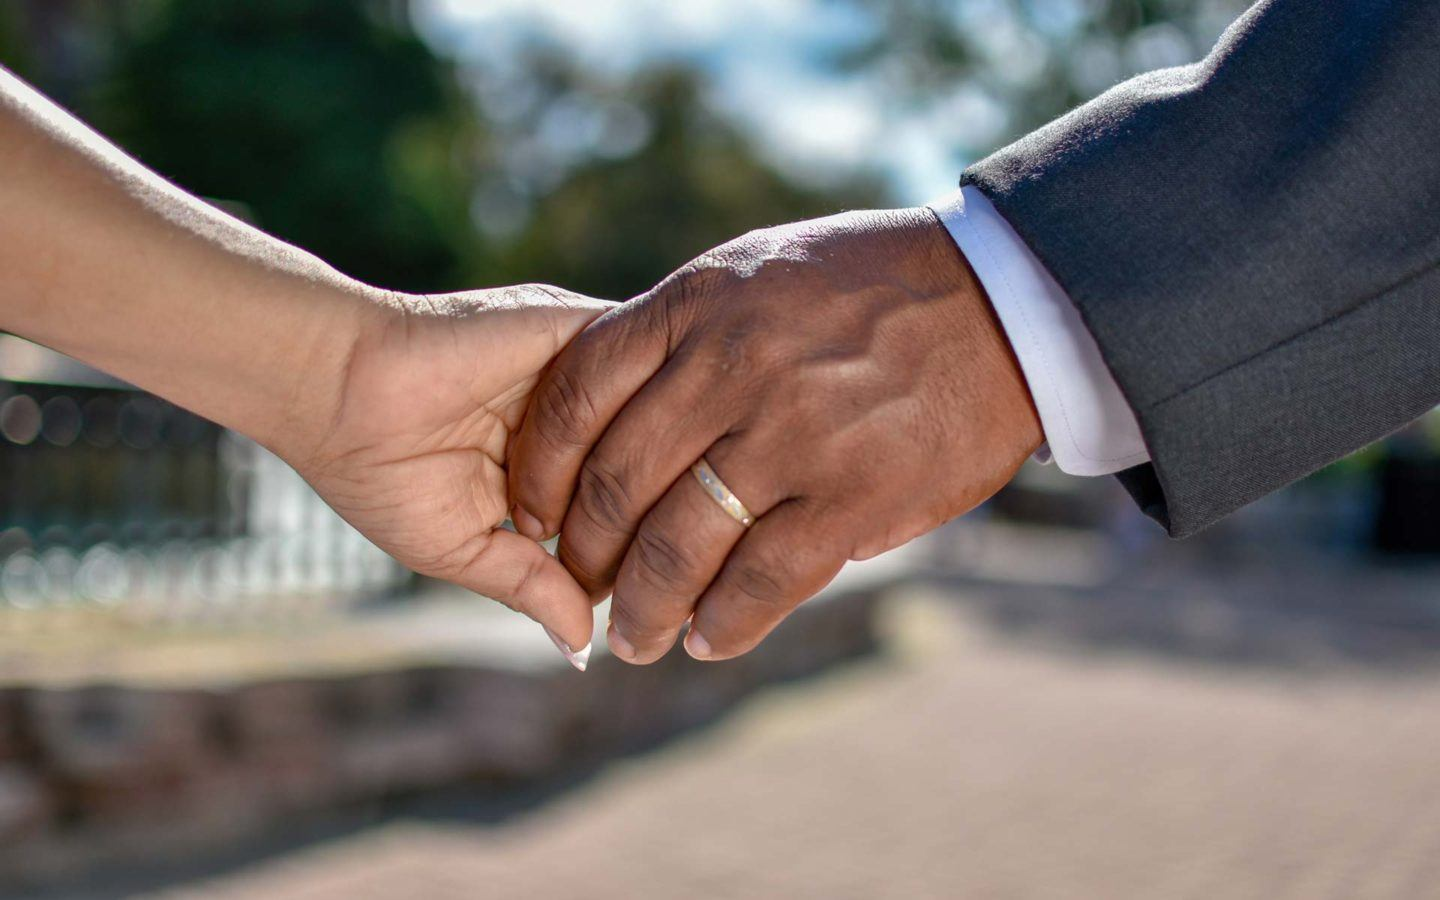 a close up photo of a couple holding hands featuring the man's wedding band